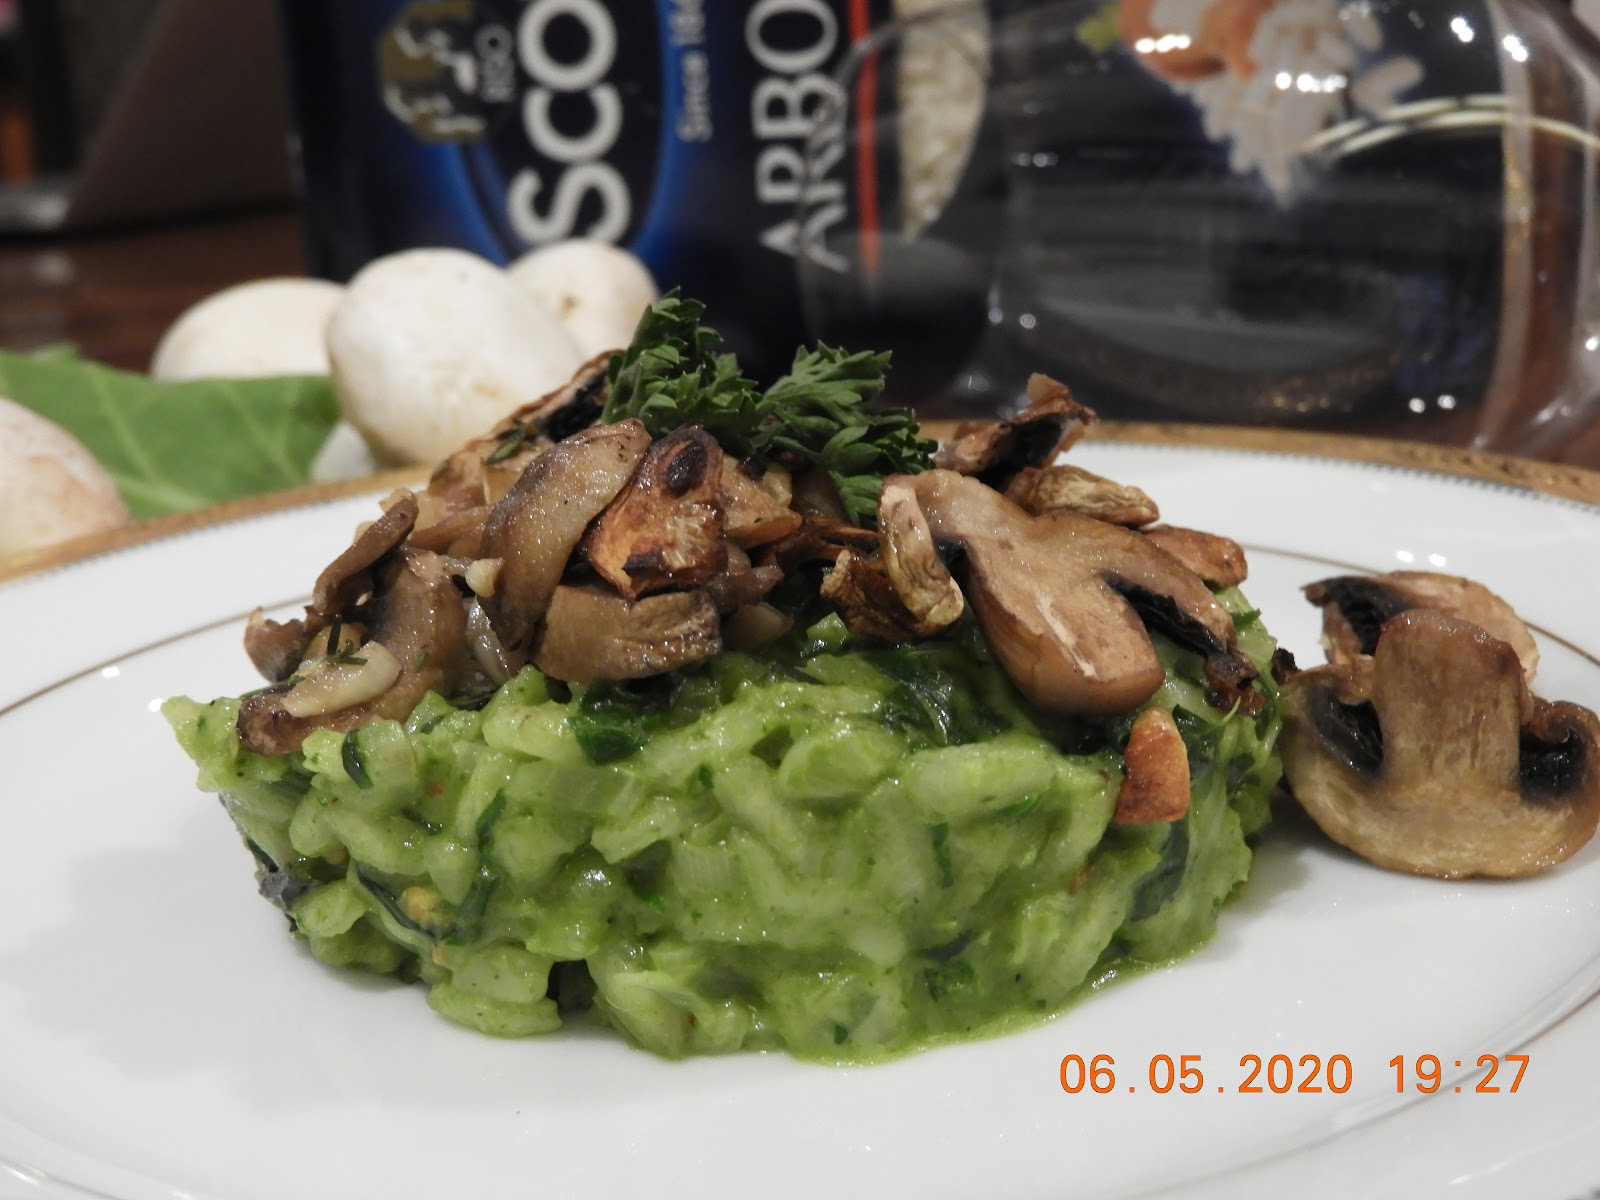 Spinach Risotto - Italian Cuisine at Kitchen by Nidhi